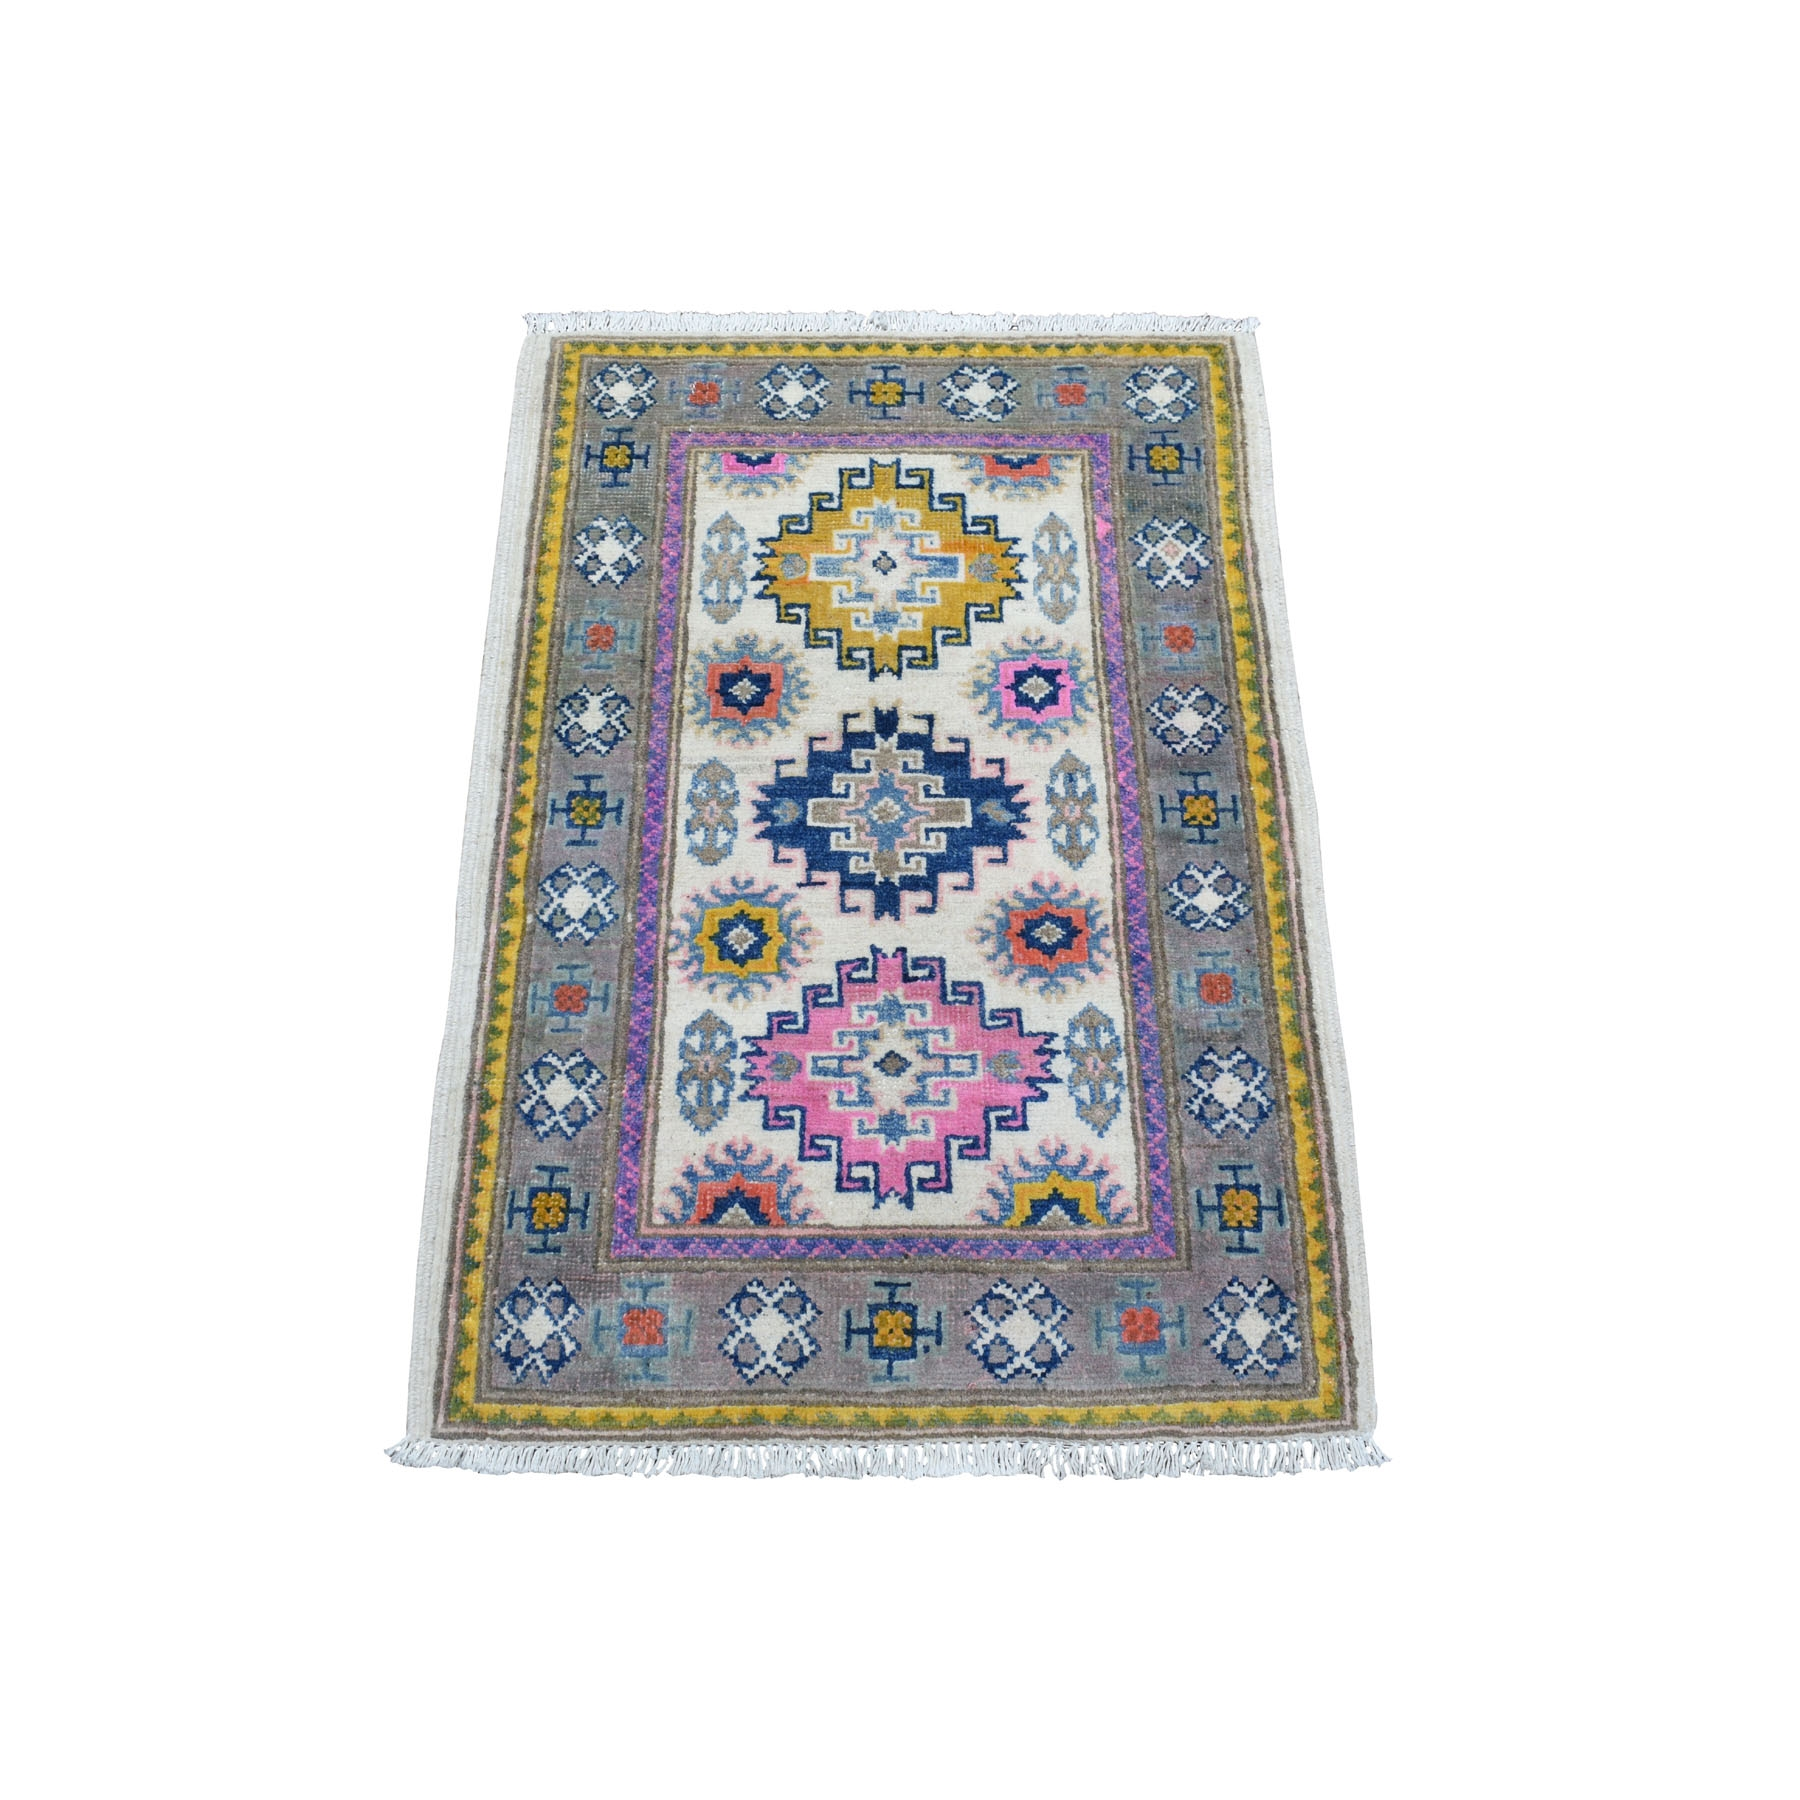 2'X3' Colorful Ivory Fusion Kazak Pure Wool Hand Knotted Oriental Rug moaedcba